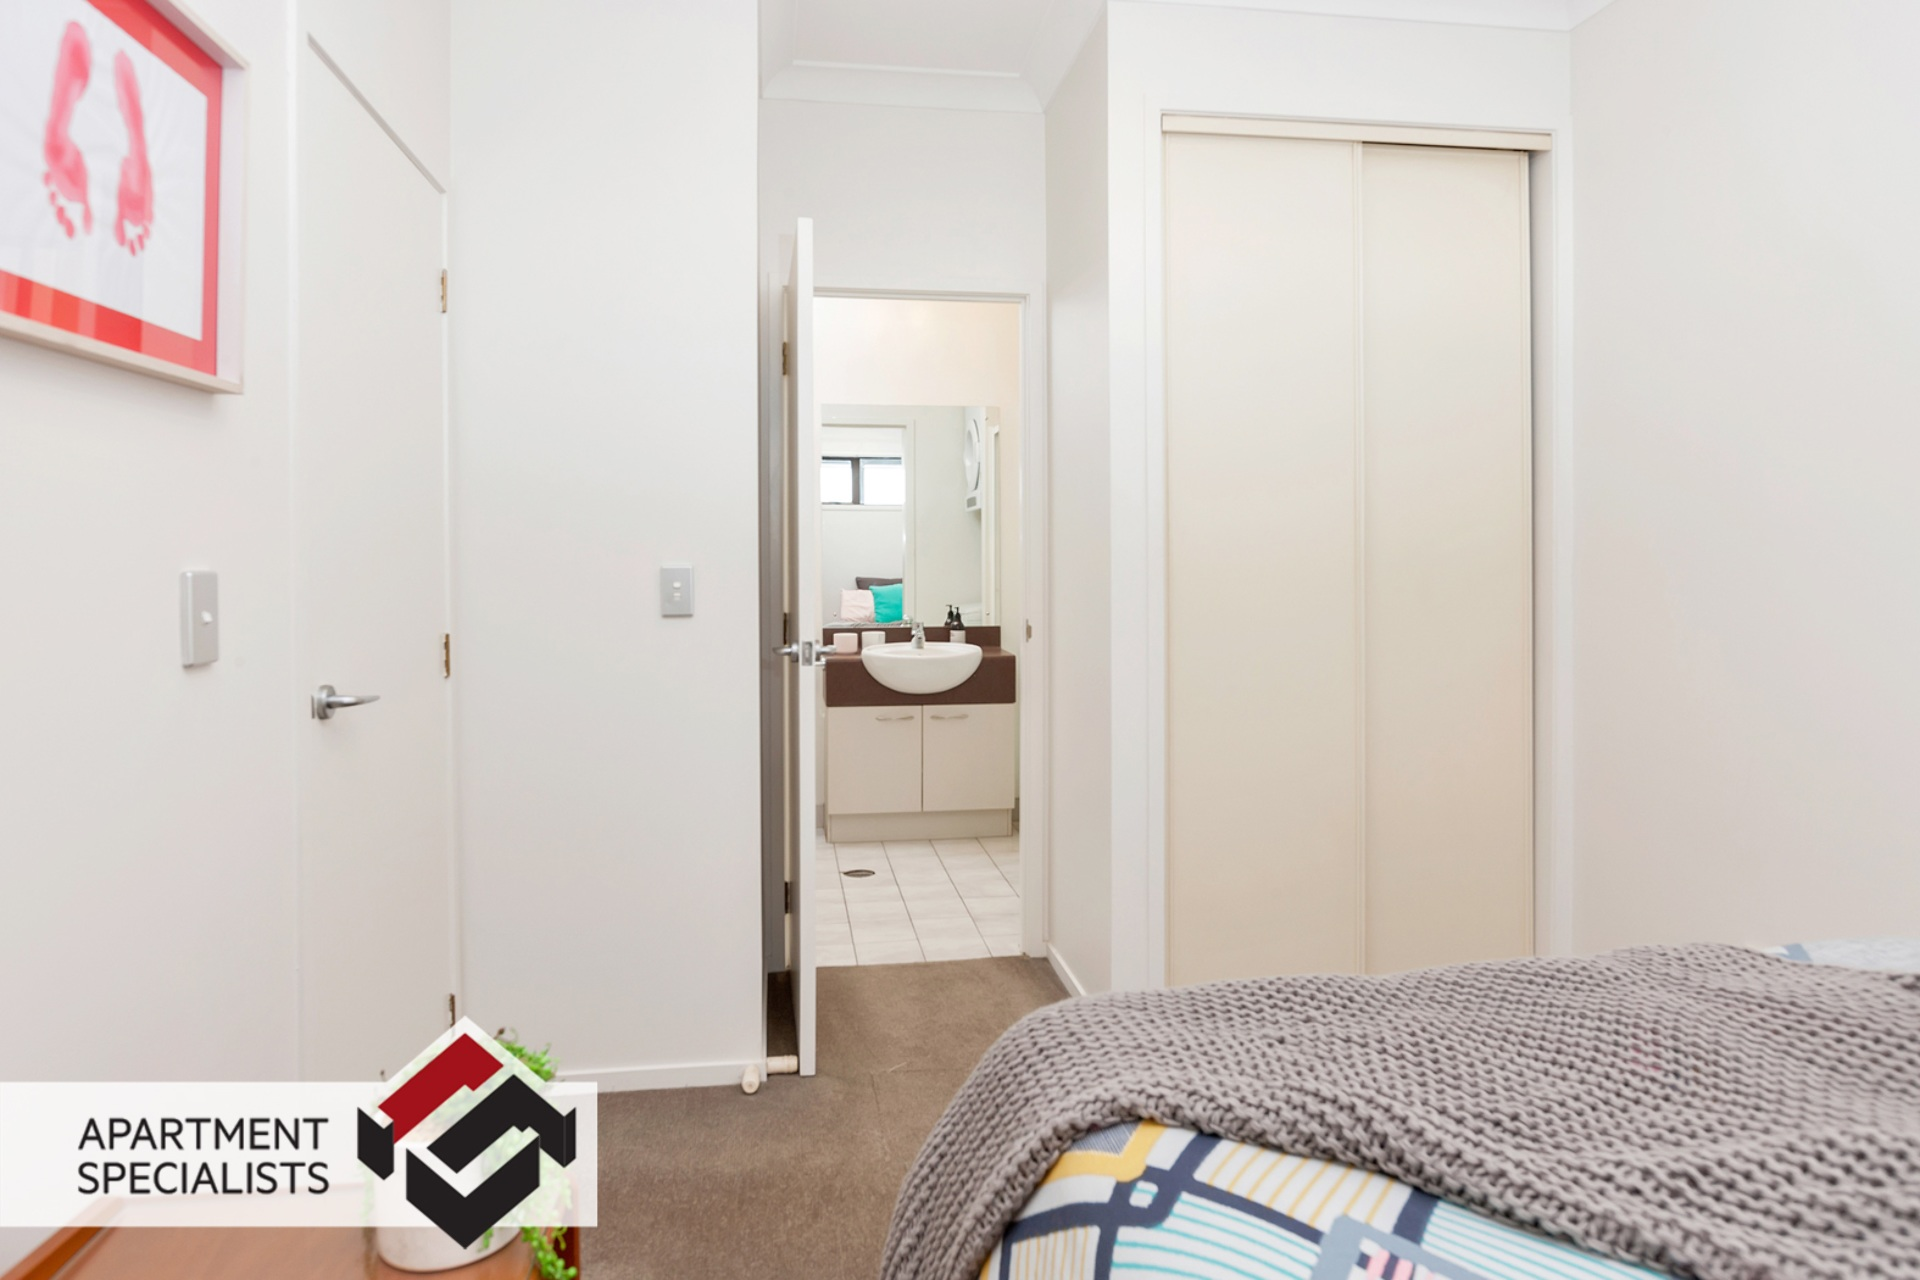 5 | 3 Morningside Drive, Kingsland | Apartment Specialists